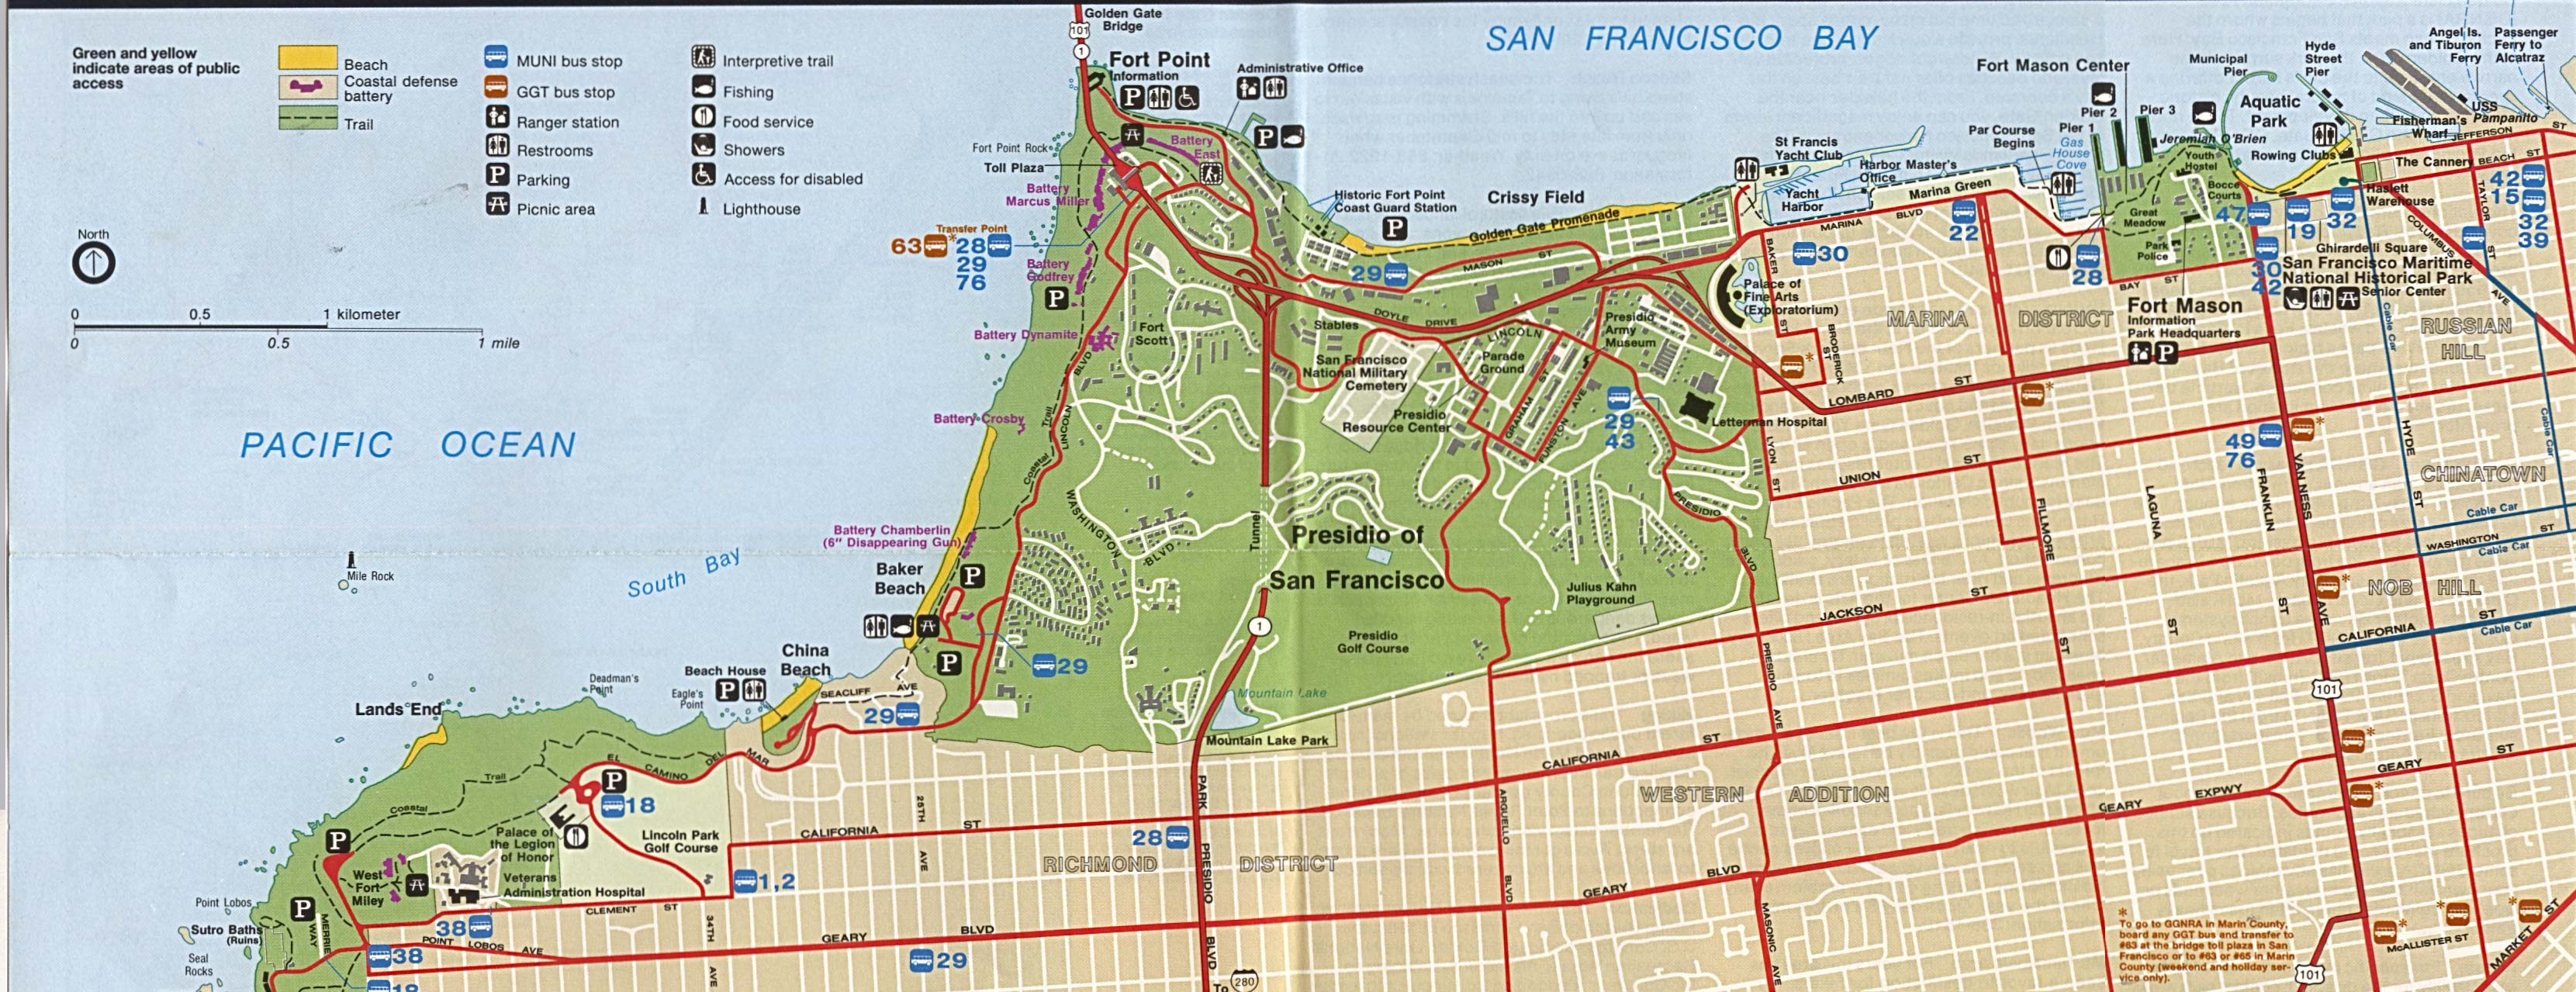 the history of the national parks in san francisco bay area united states Best national parks in san francisco bay area the san francisco bay area consists of 11 national parks this park is more for history buffs and architecture.